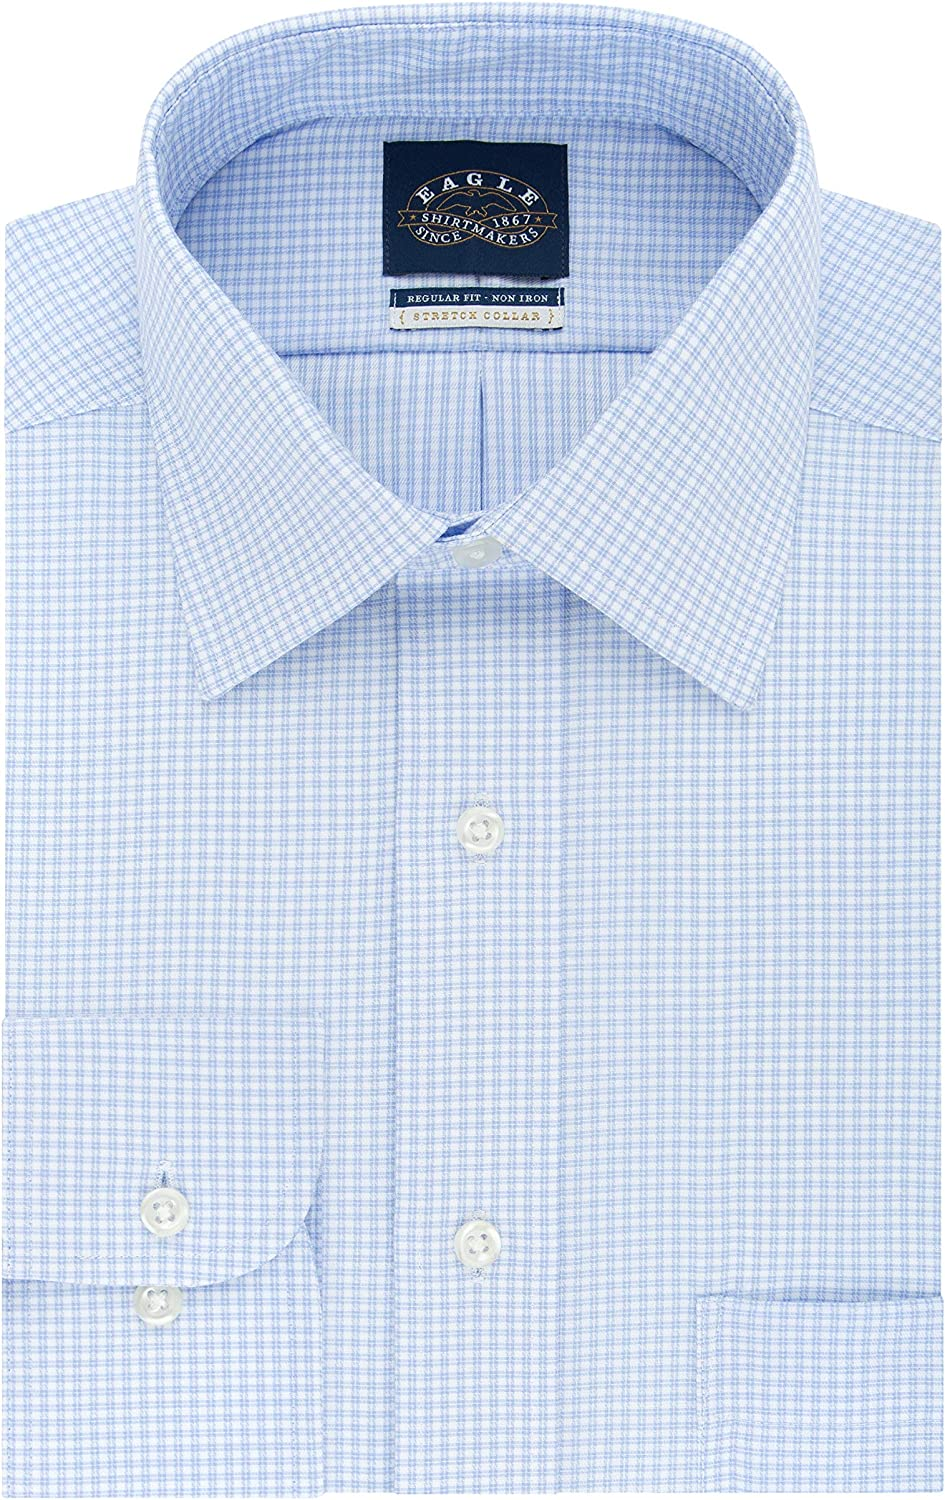 Eagle Mens Stretch Regular Fit Check Spread Collar Dress Shirt